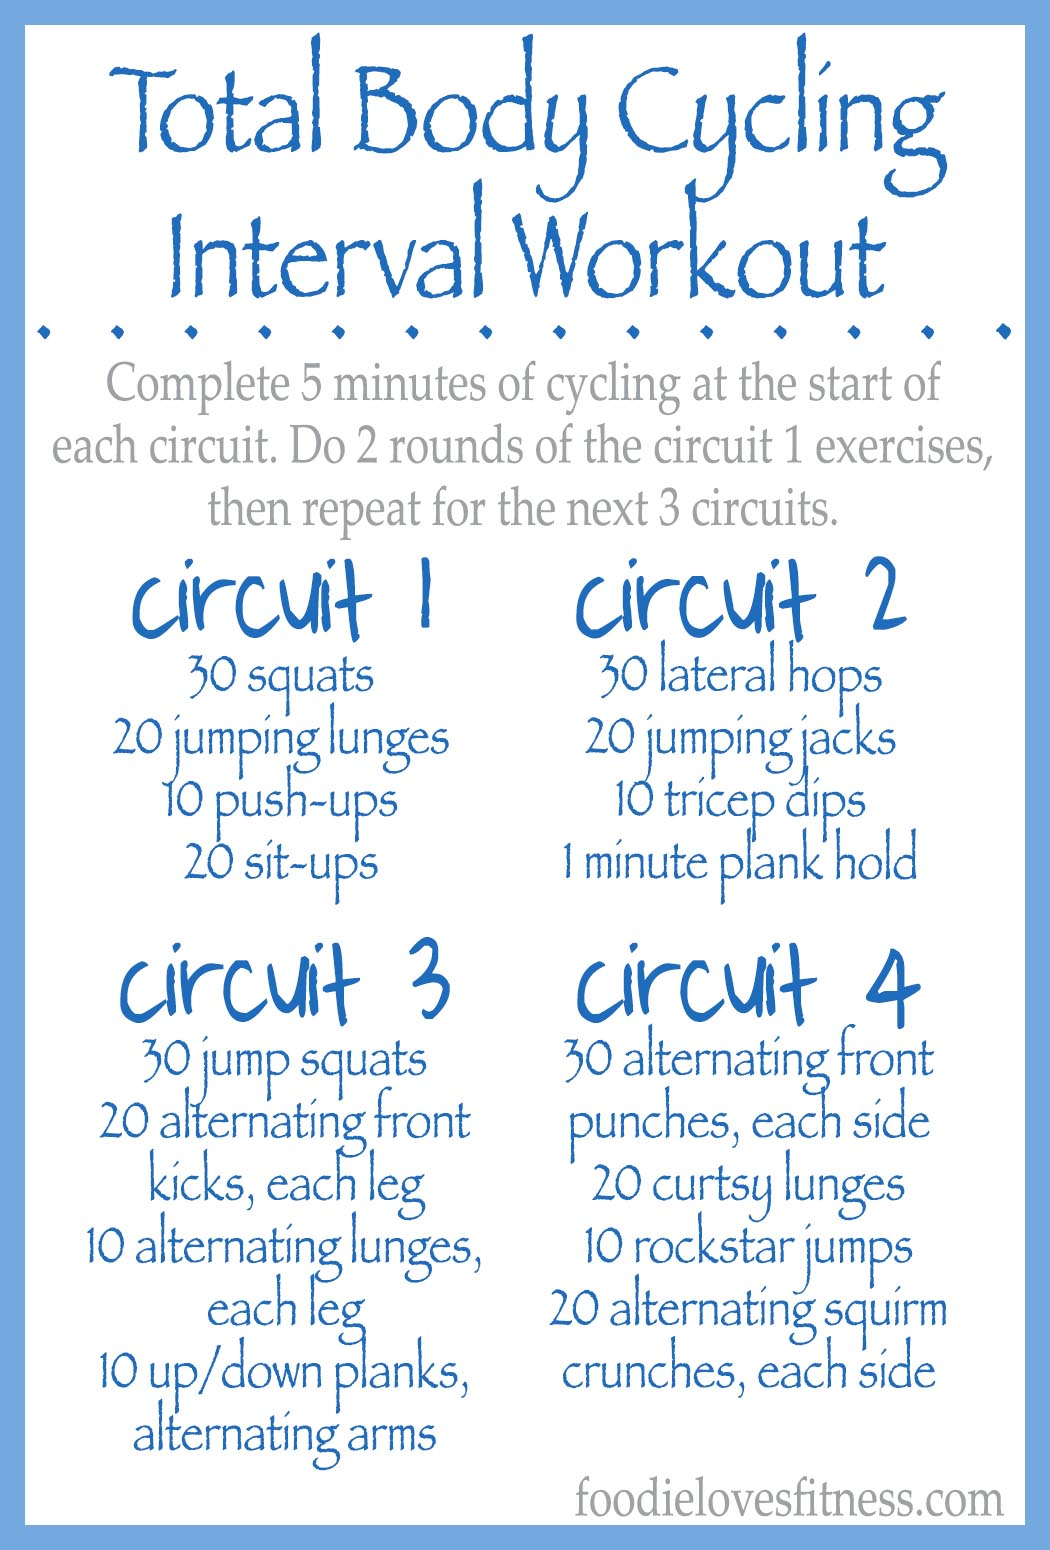 Total Body Cycling Circuit Workout